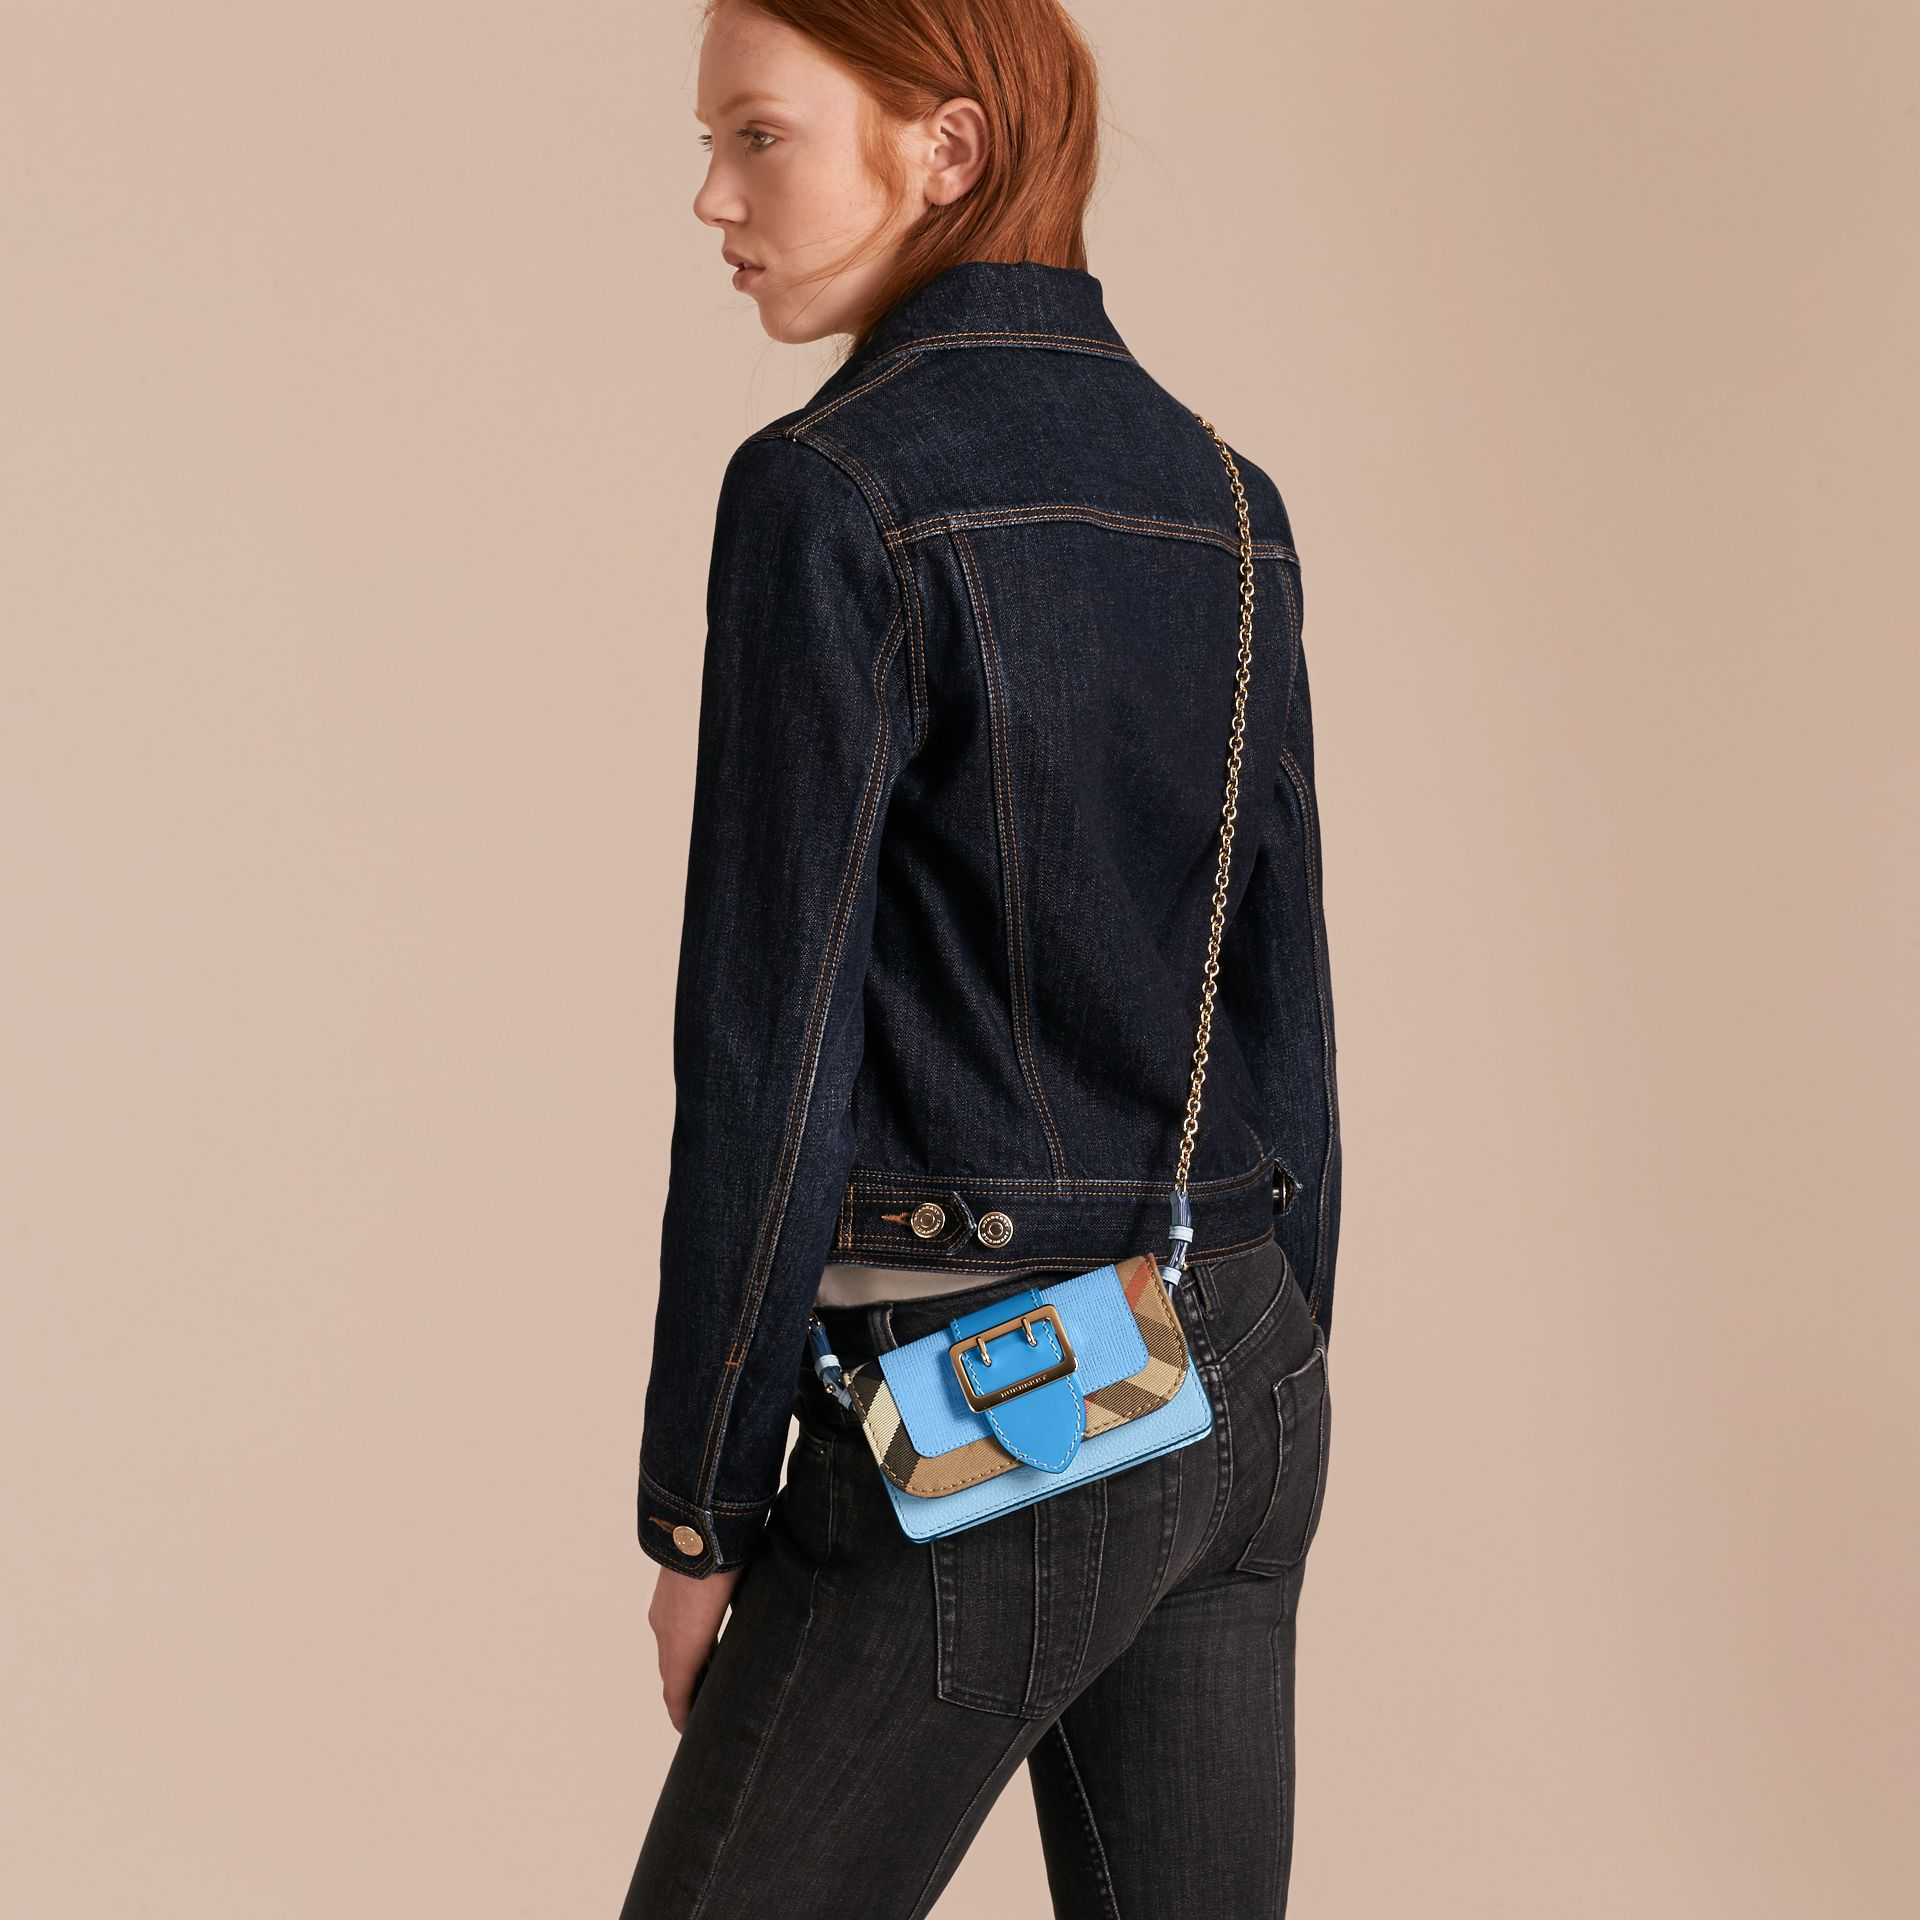 Bright mineral blue The Mini Buckle Bag in Leather and House Check Bright Mineral Blue - gallery image 3